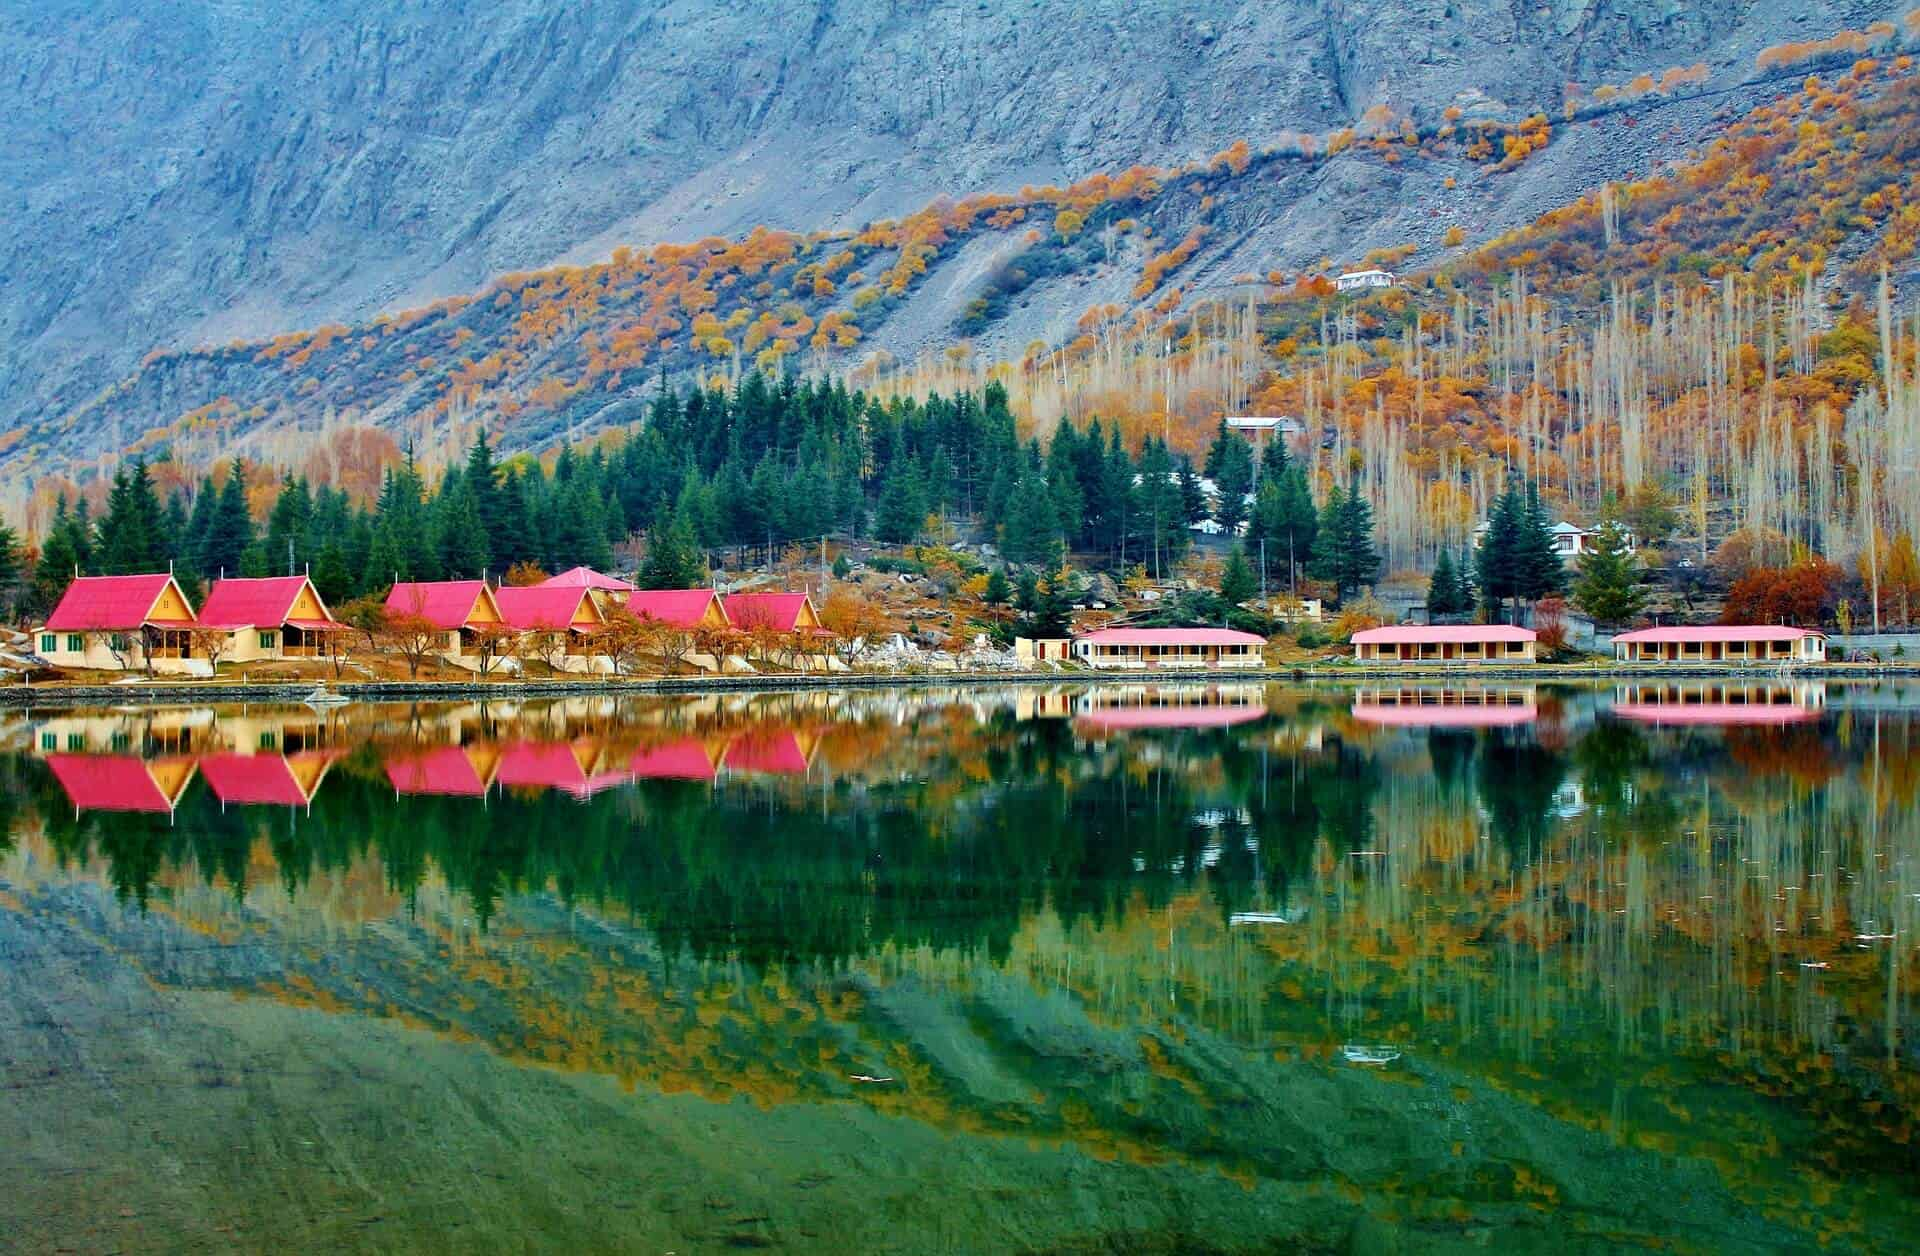 13D11N BEAUTY OF PAKISTAN-5